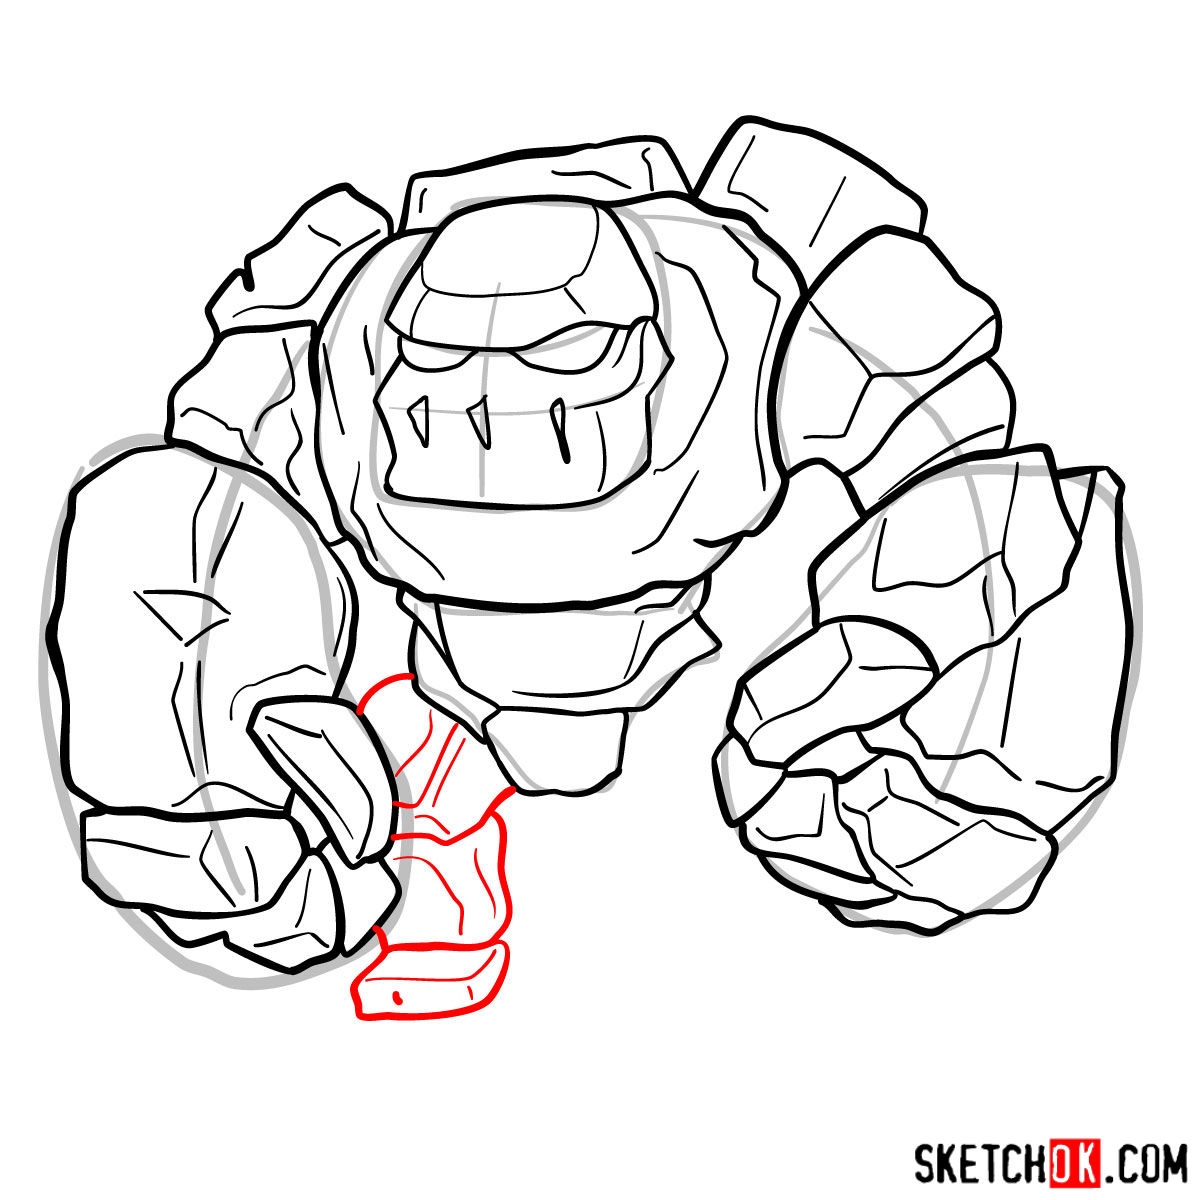 How to draw Golem (Golemite) from Clash of Clans - step 09